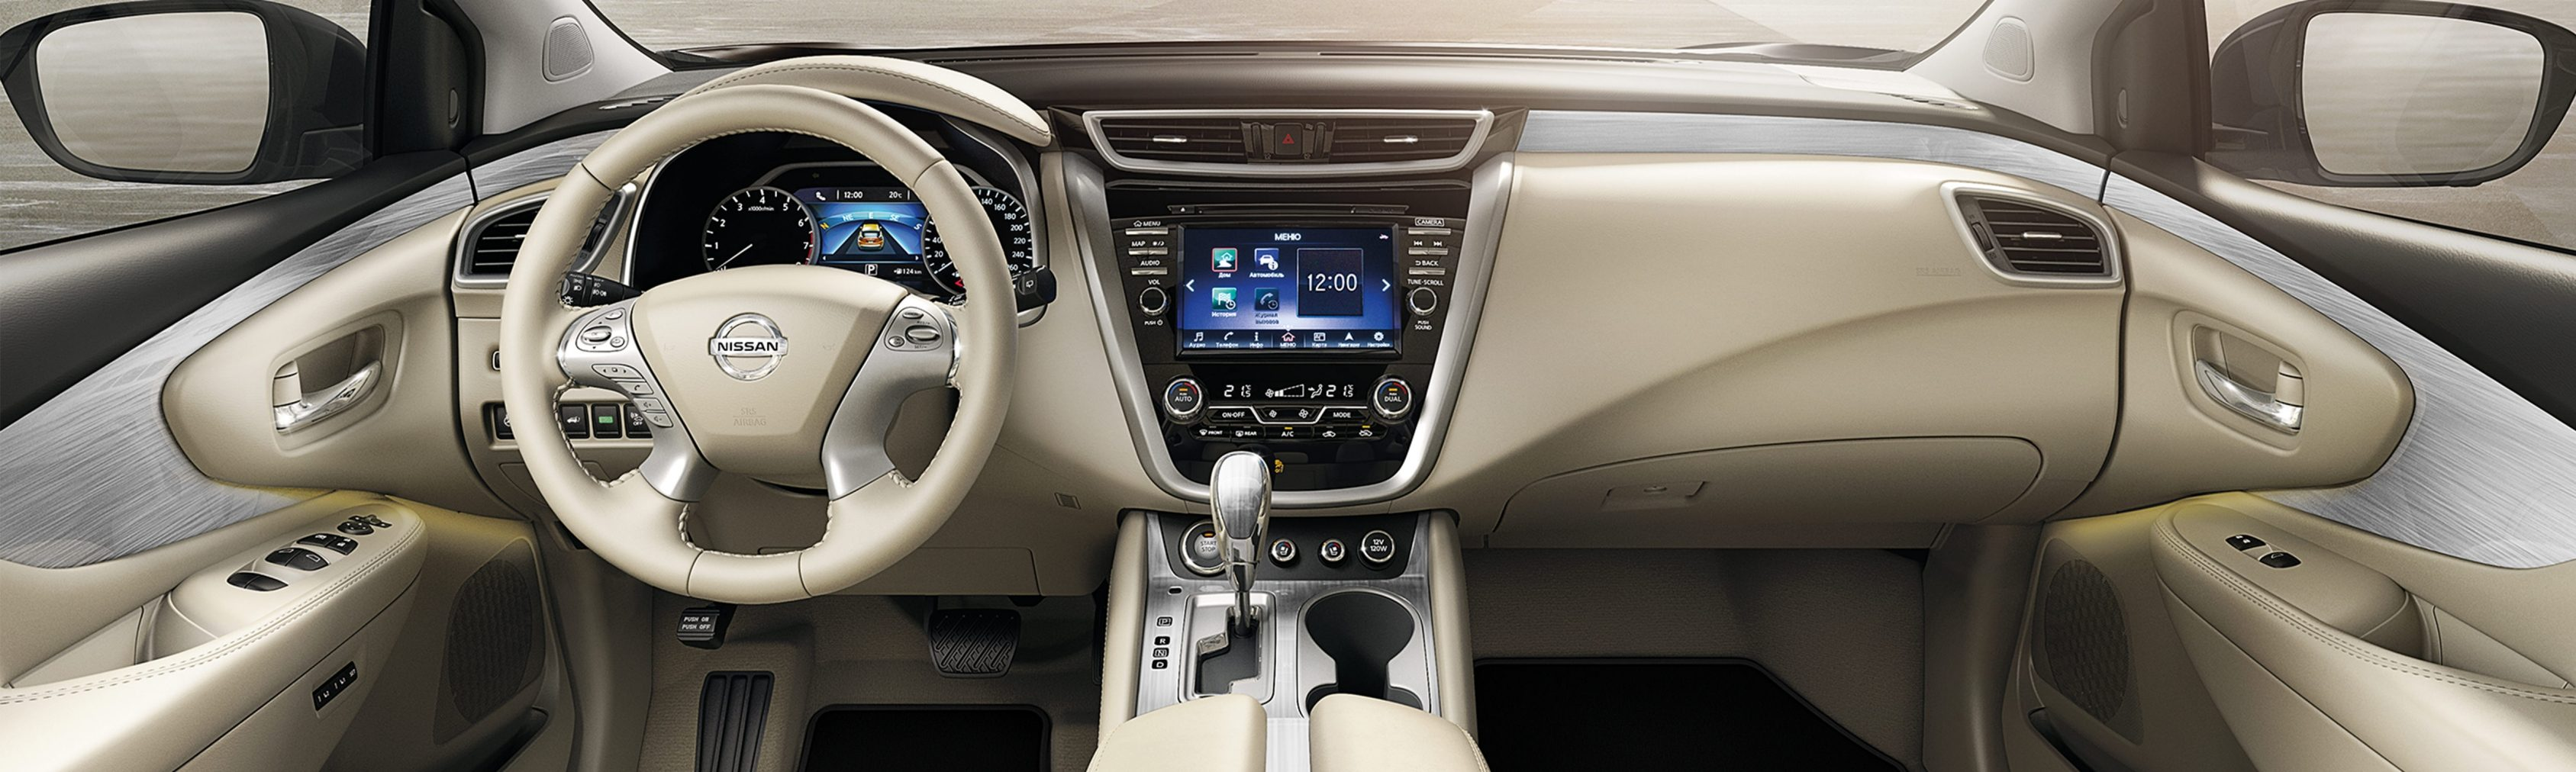 Nissan MURANO interior view